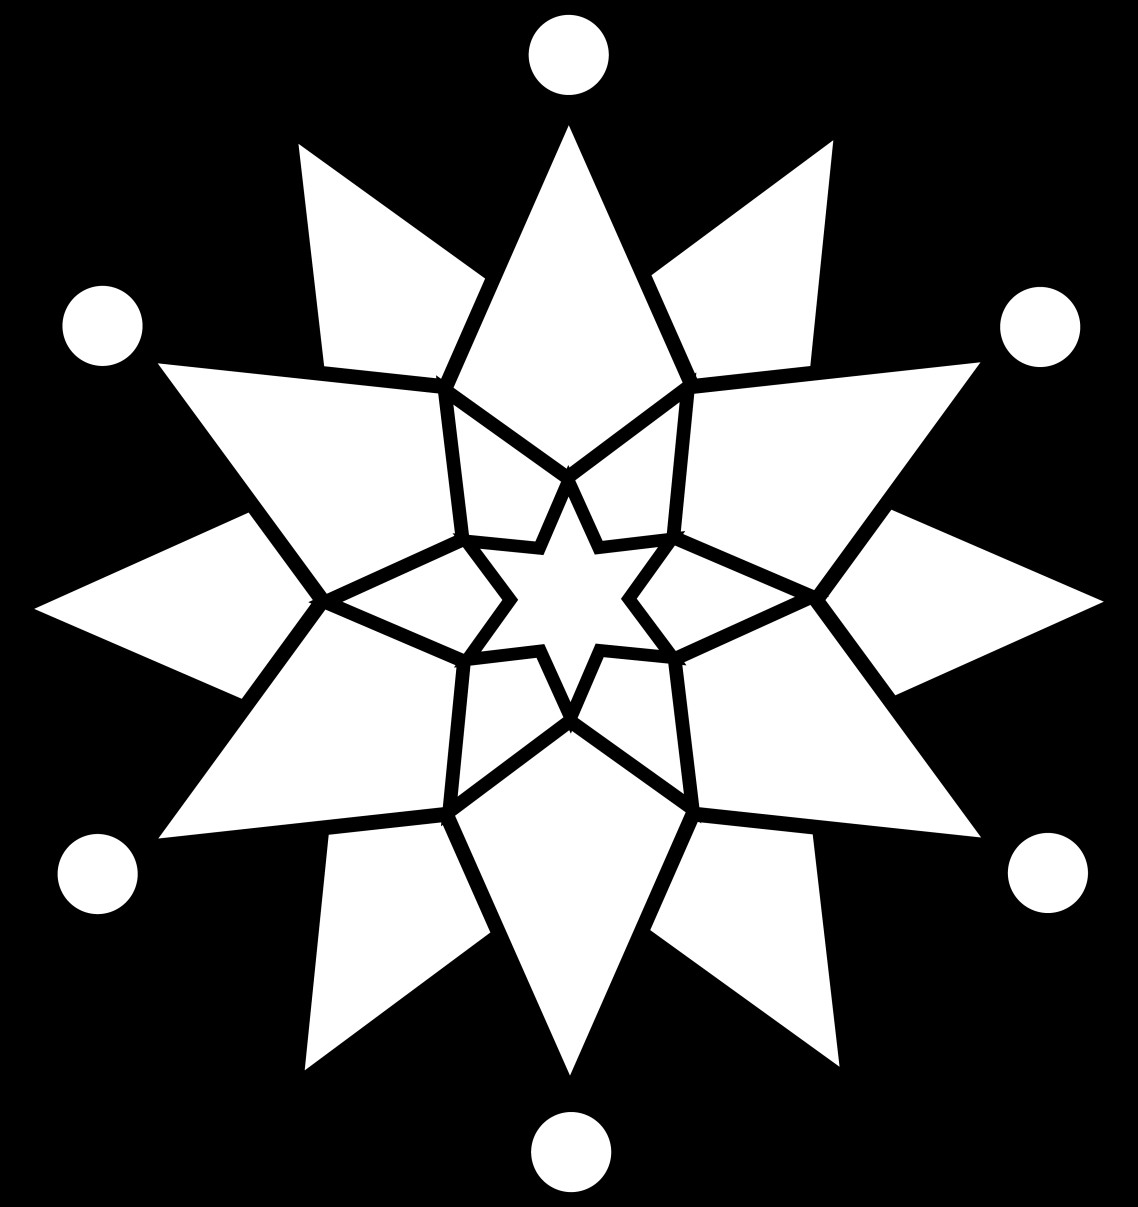 Black Christmas Snowflake Clipart.